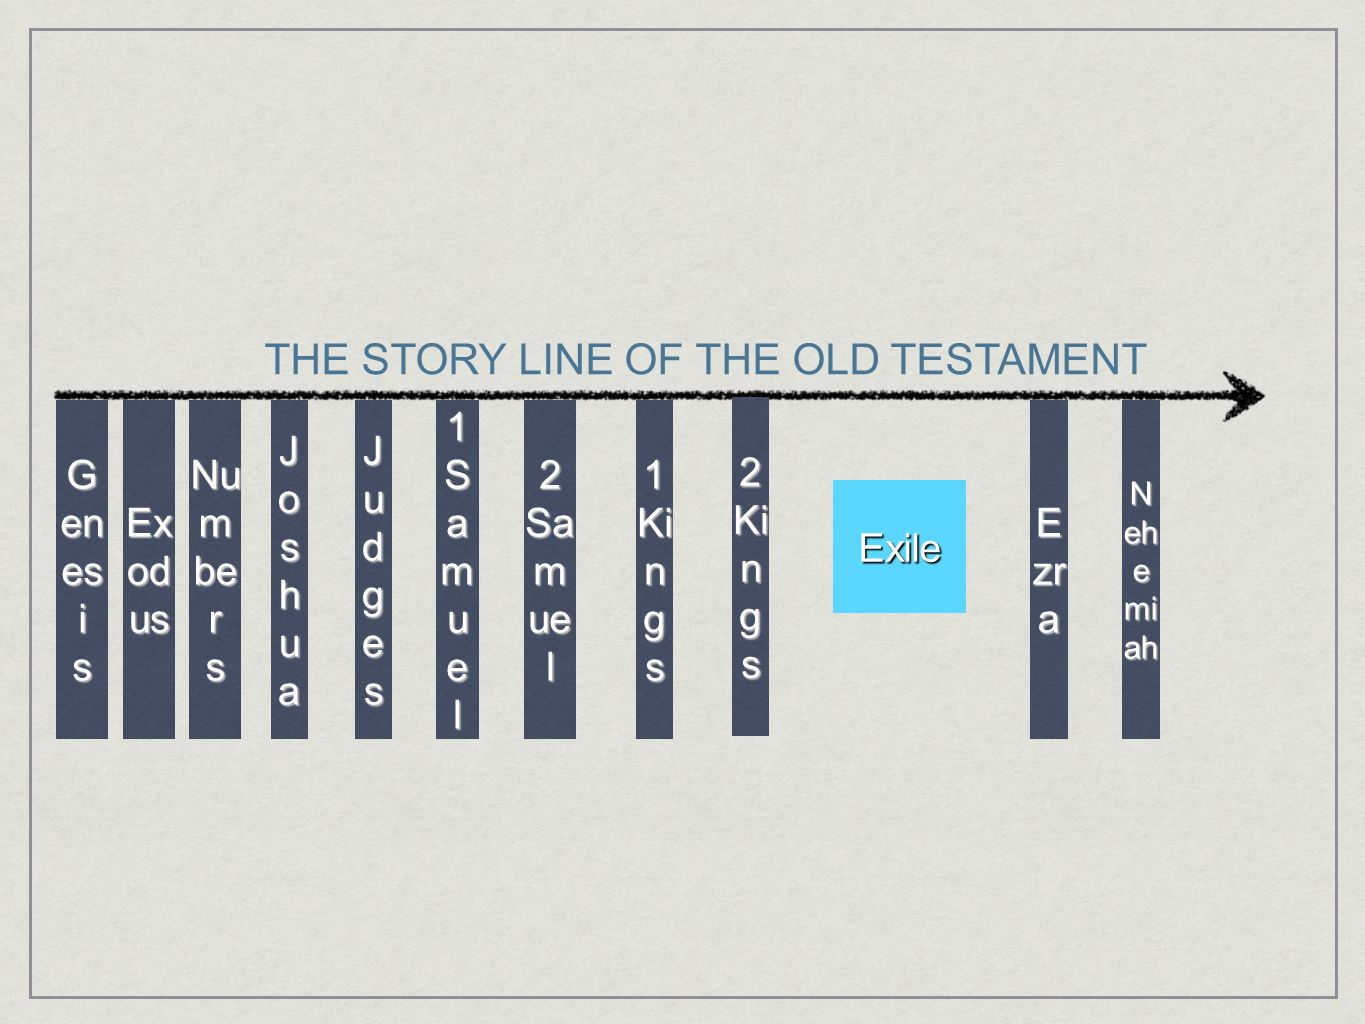 THE STORY LINE OF THE OLD TESTAMENT